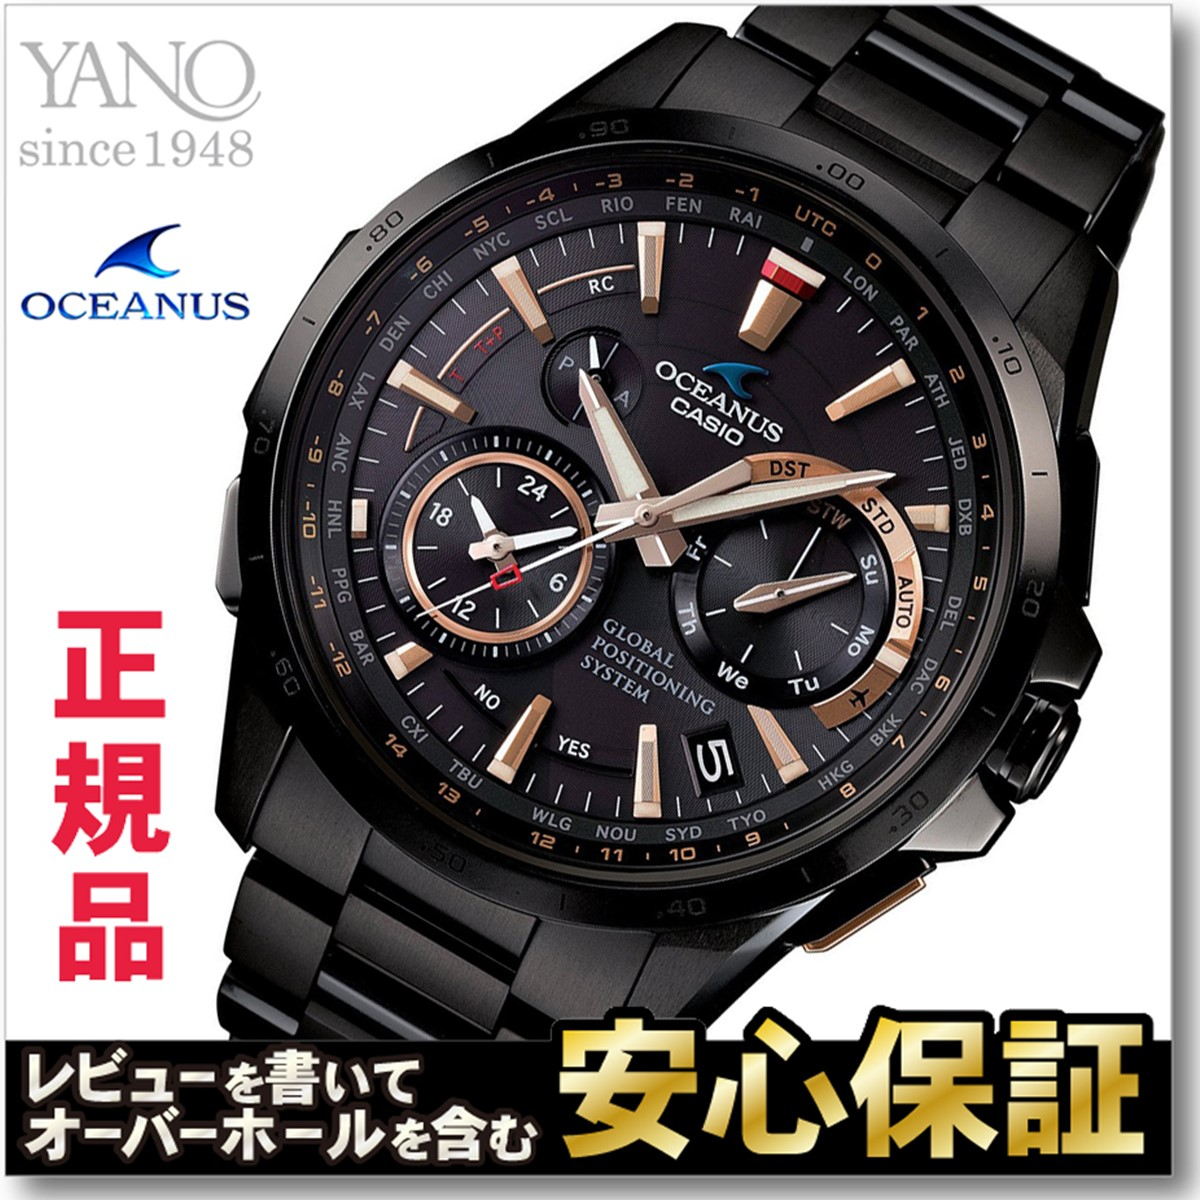 casio htm tough solar watches mens price aq watch lowest